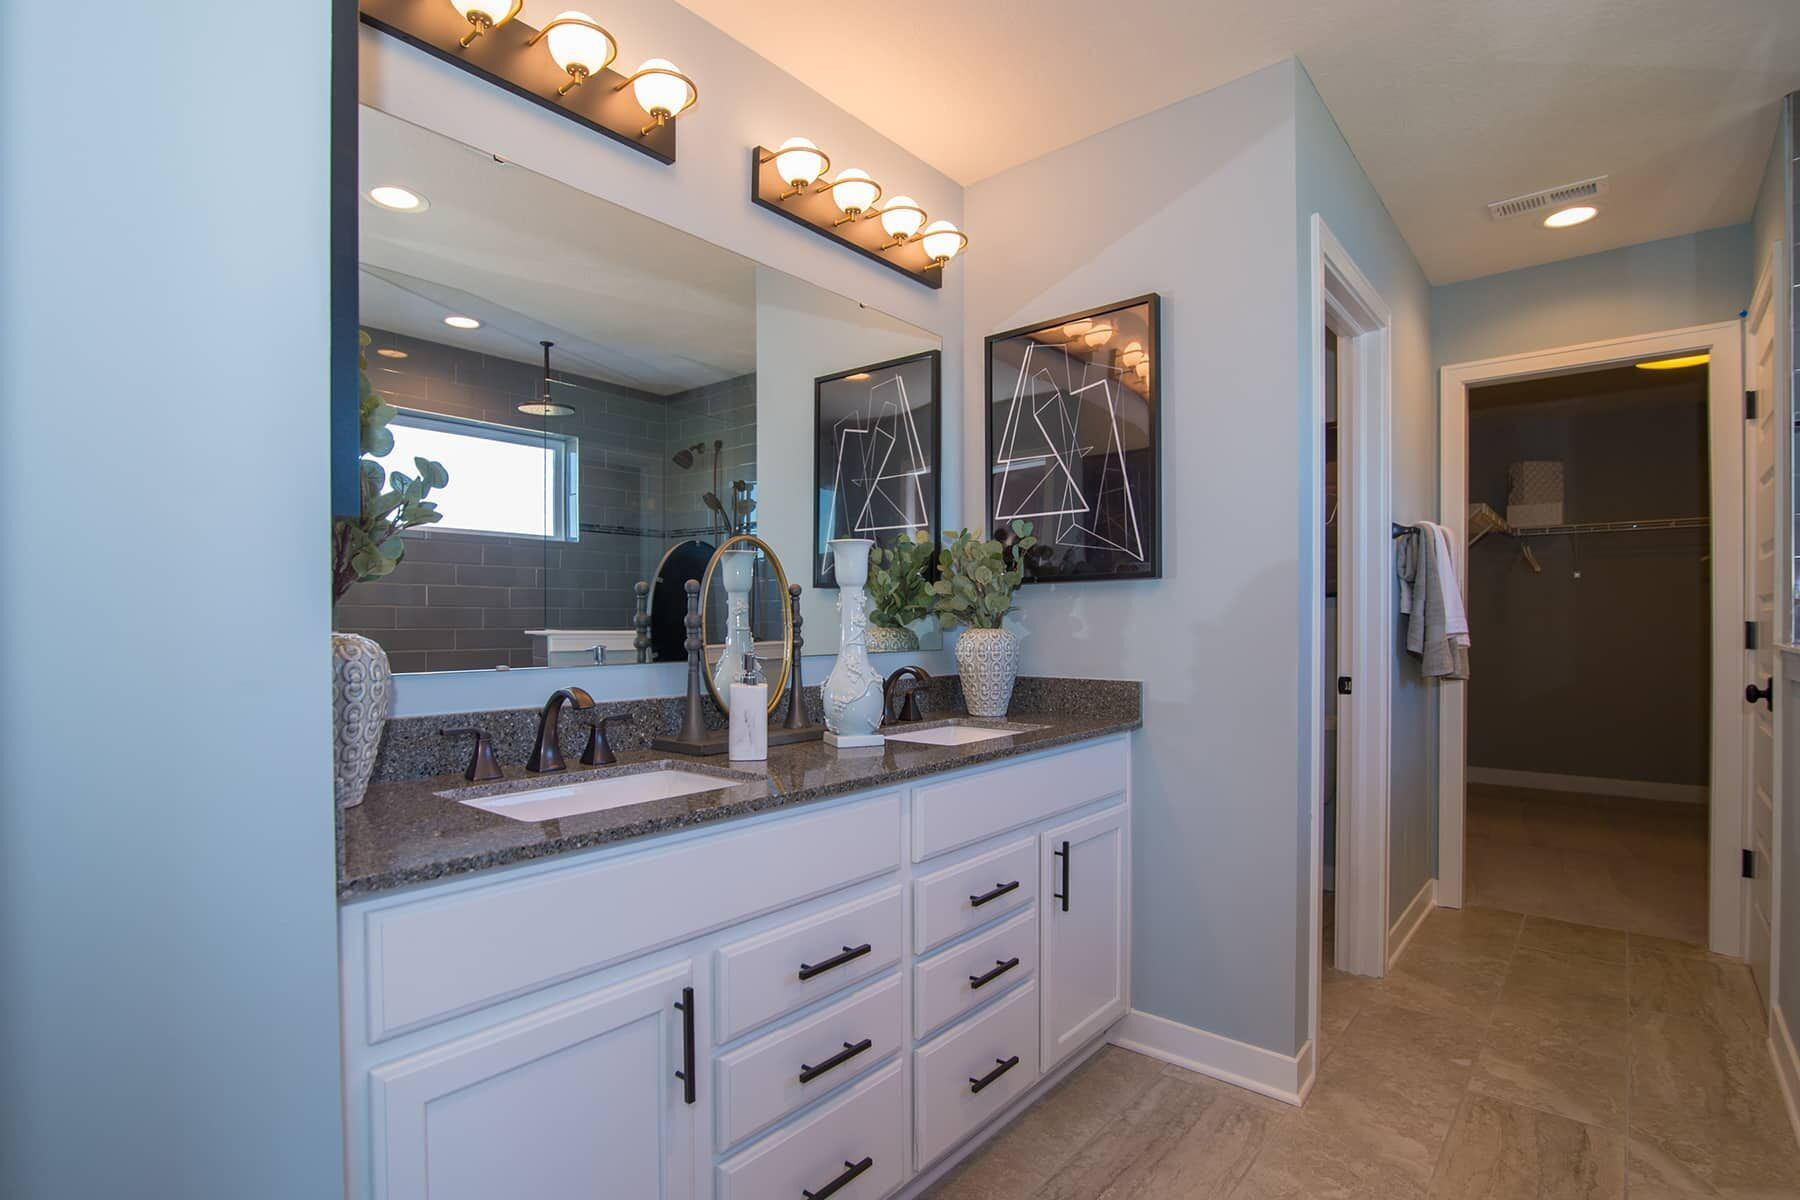 Bathroom featured in the Glendale Basement By M/I Homes in Indianapolis, IN